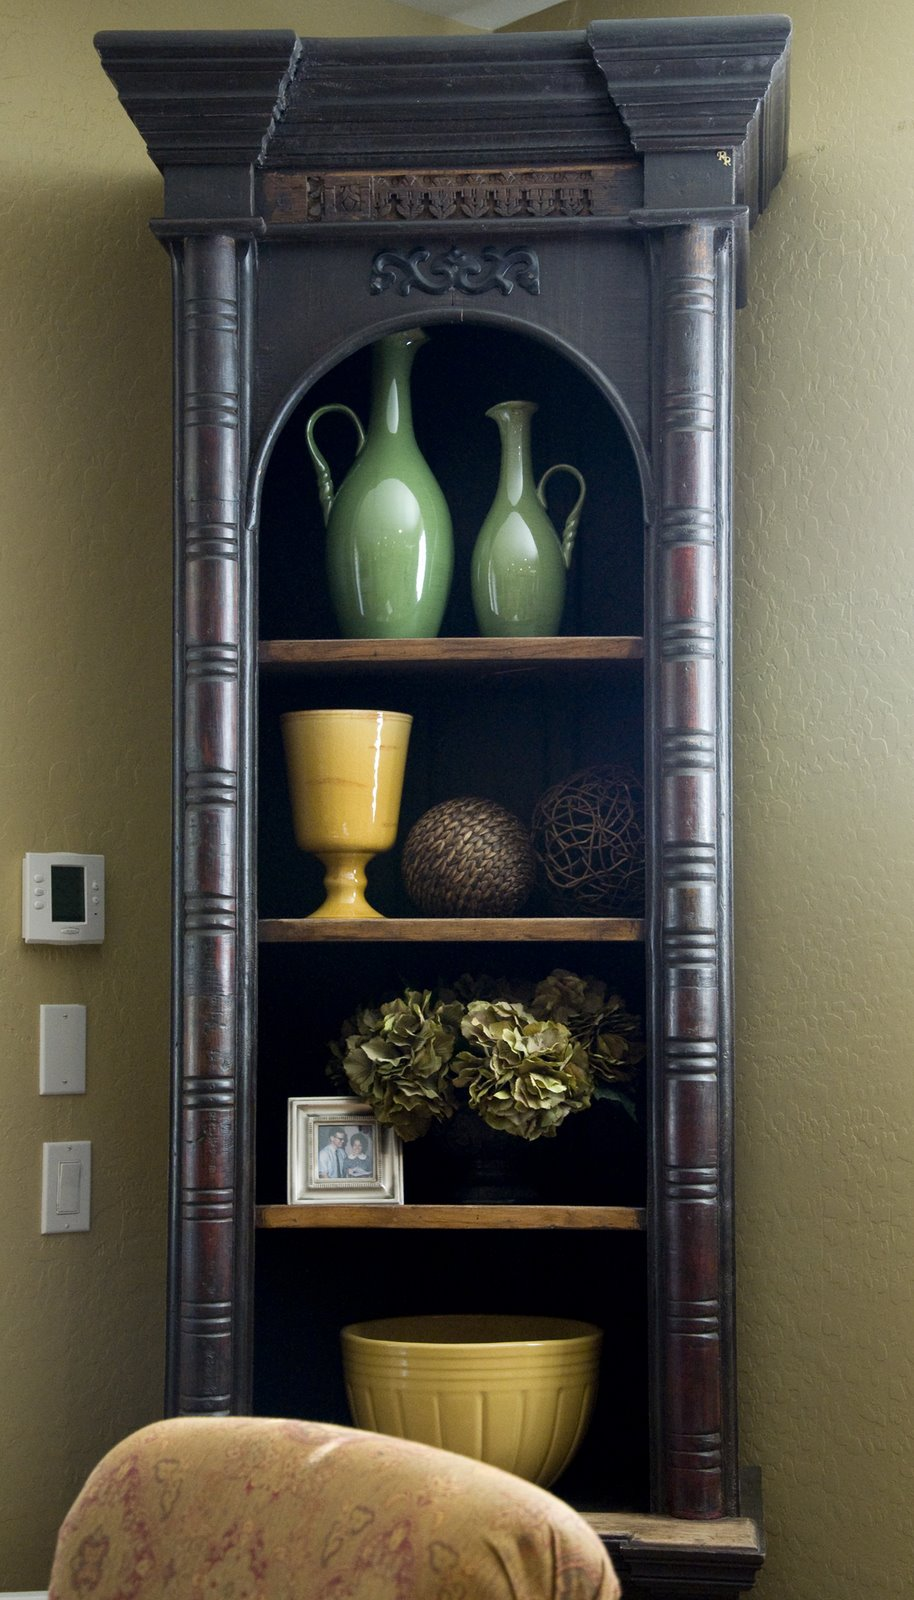 Kitchen Corner Decorating How To Decorate A Corner How To Decorate Corner Shelves Home